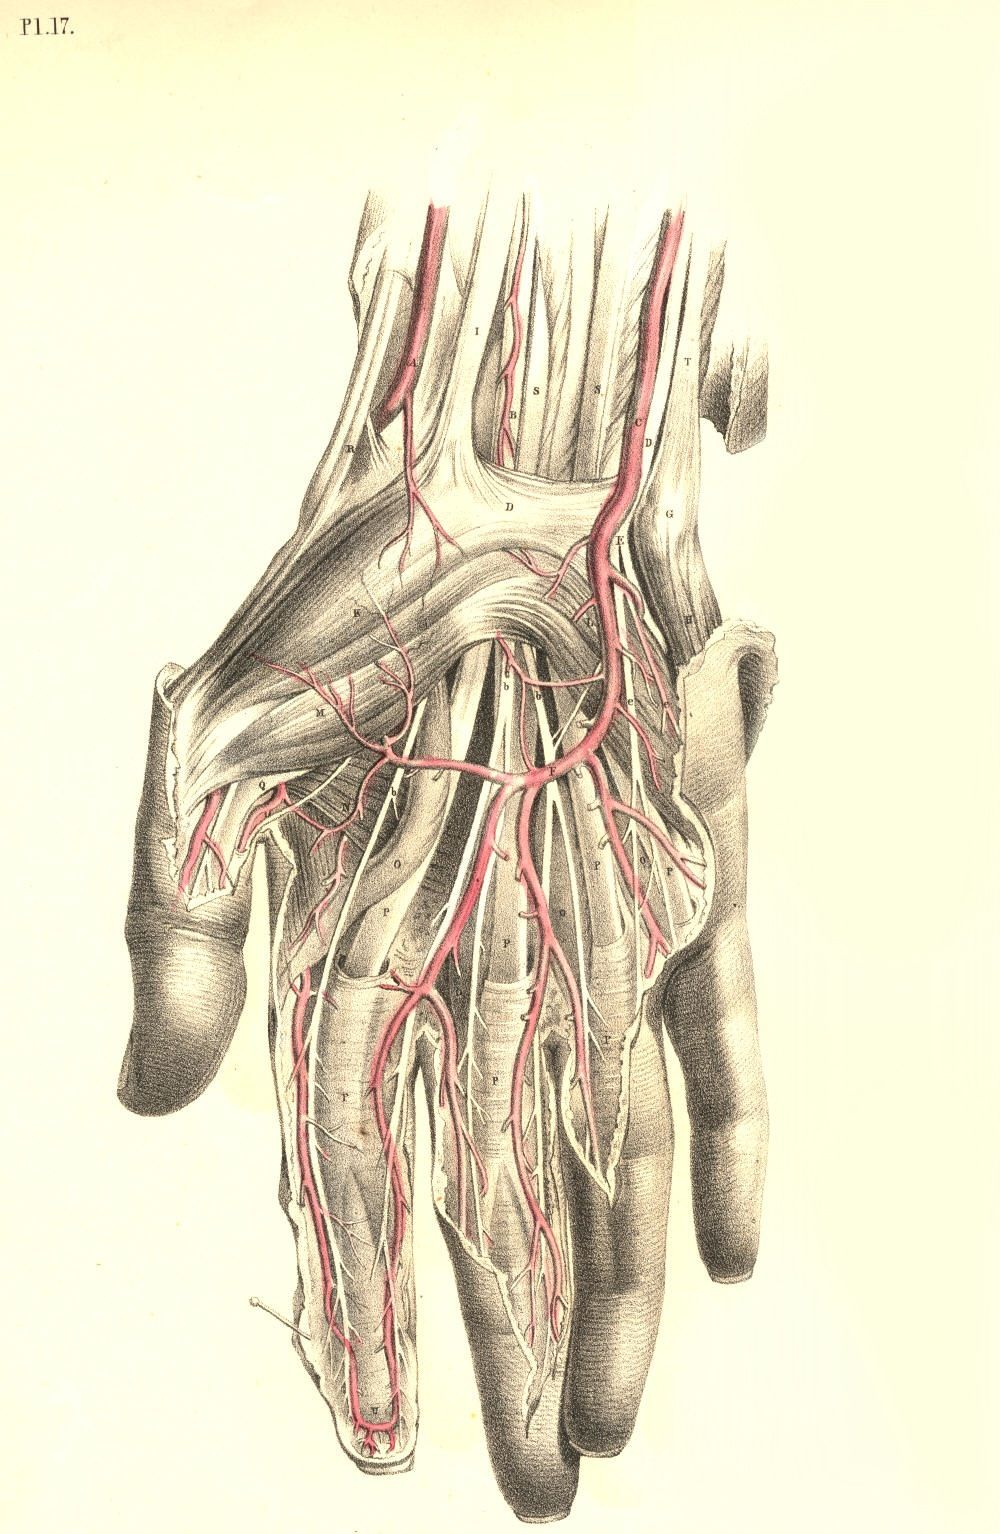 Plate 17: Surgical Dissection of the Wrist and Hand from Surgical ...